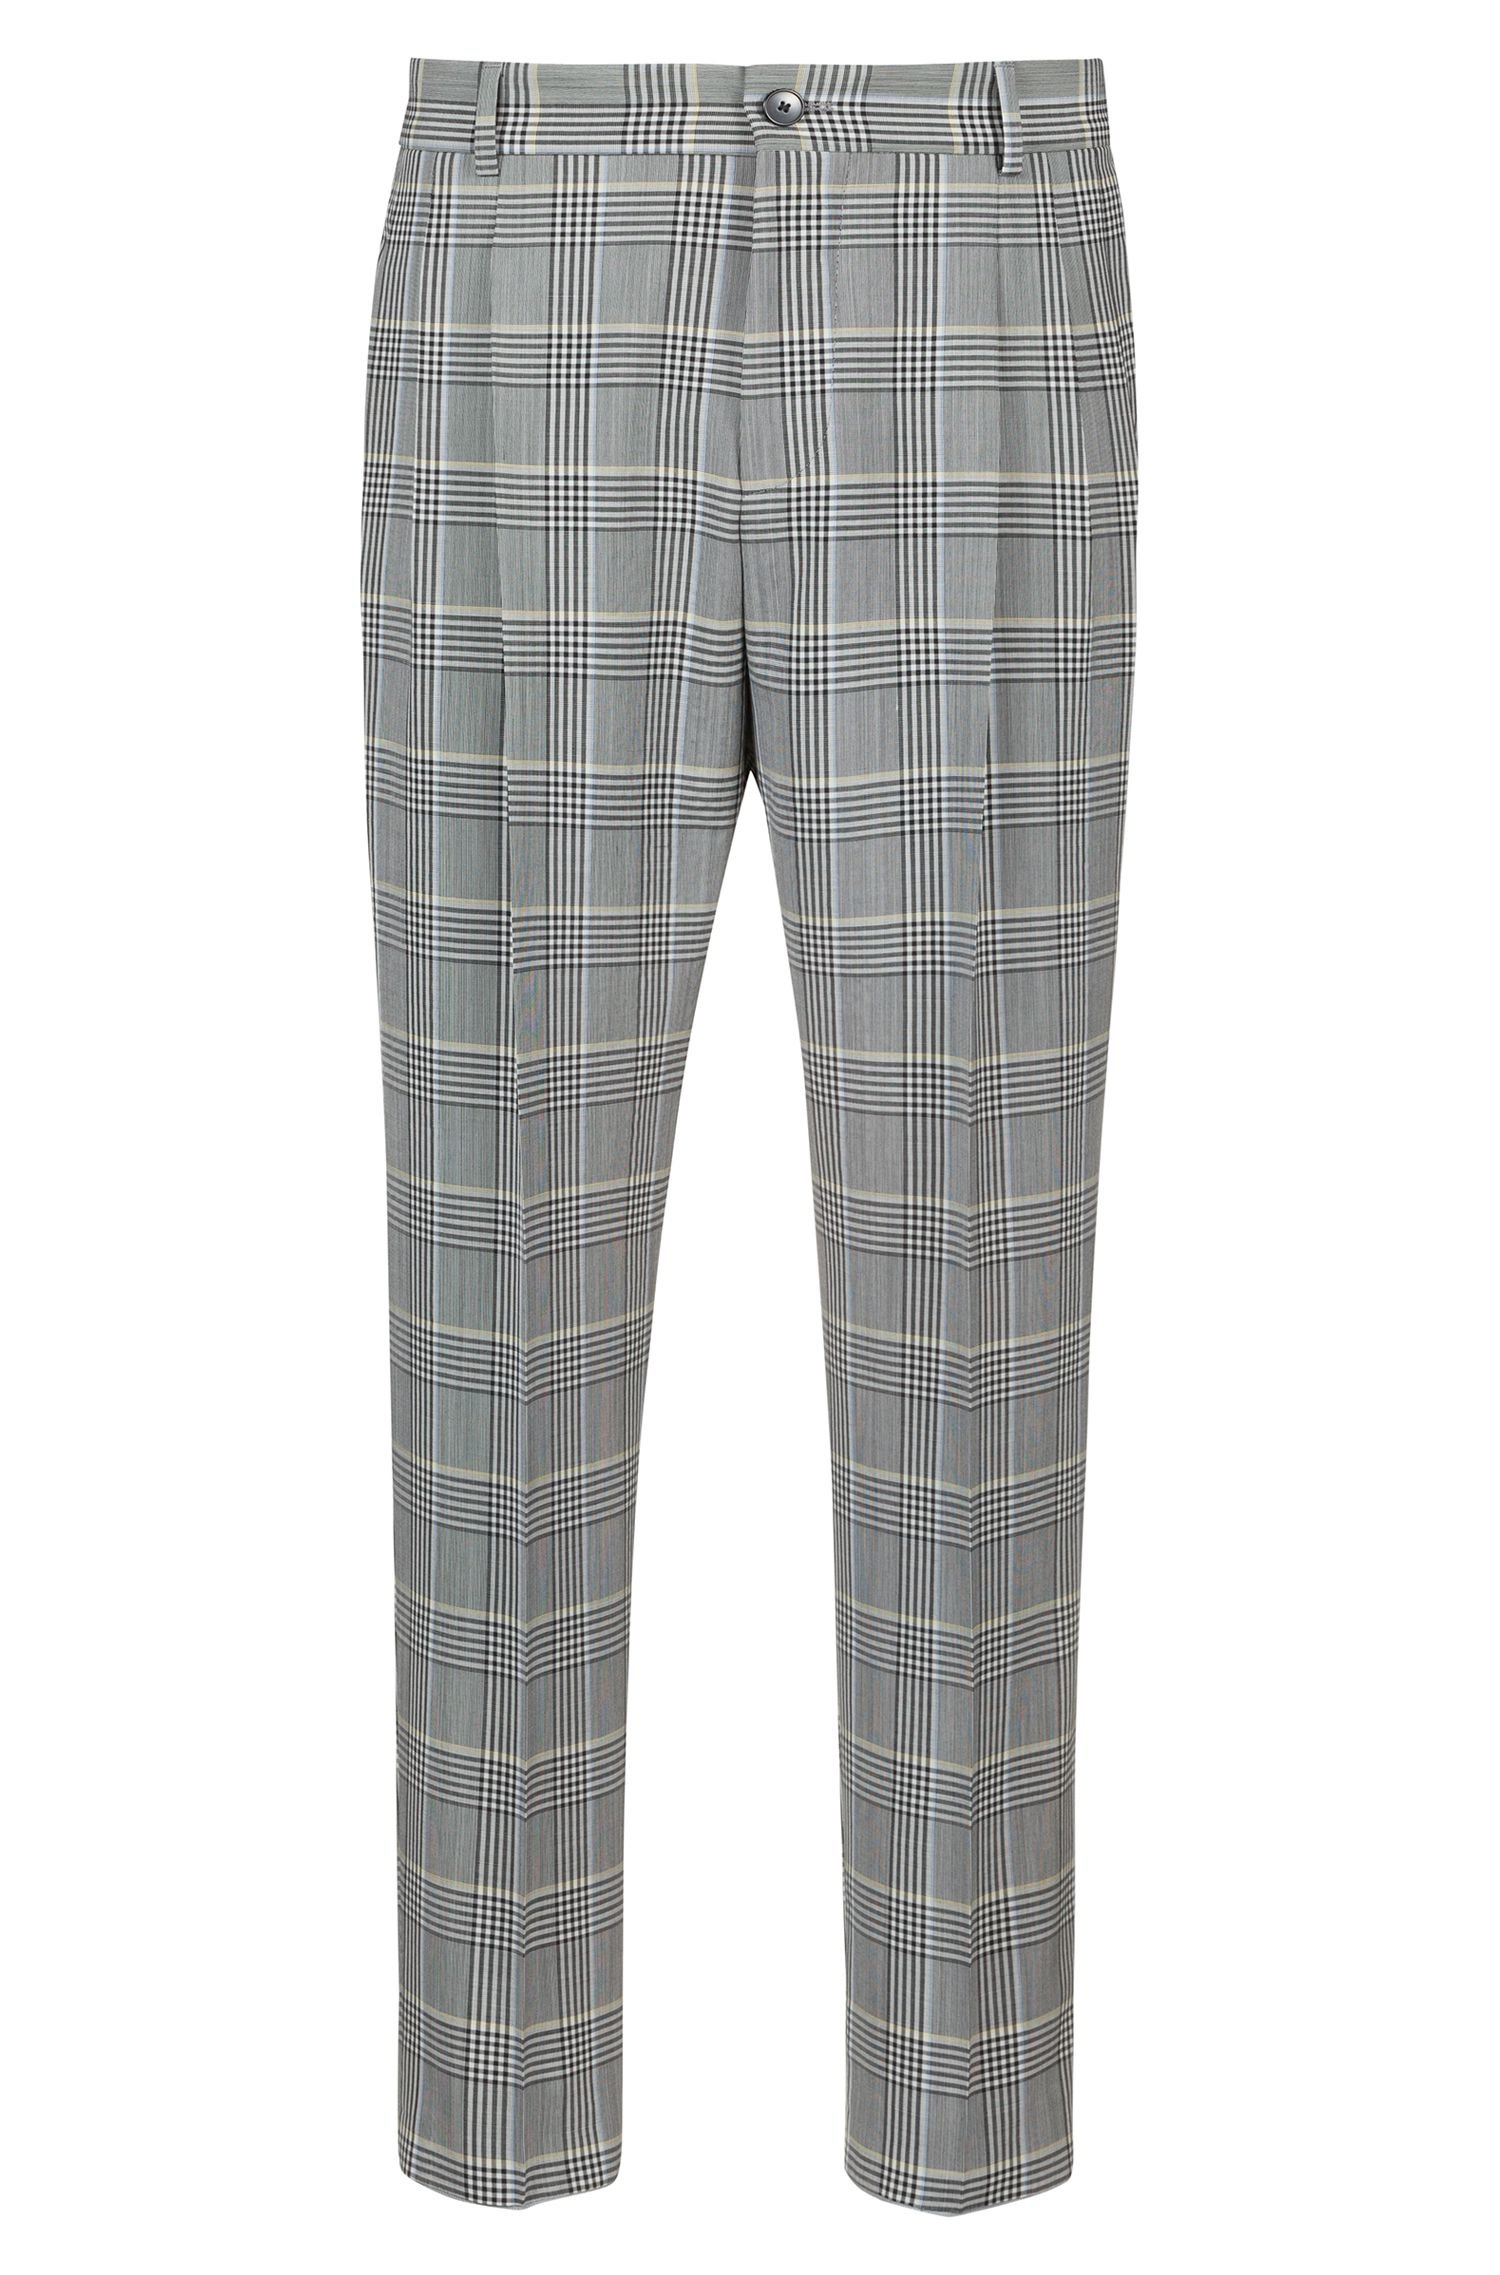 Relaxed-fit trousers in checked seersucker, Patterned